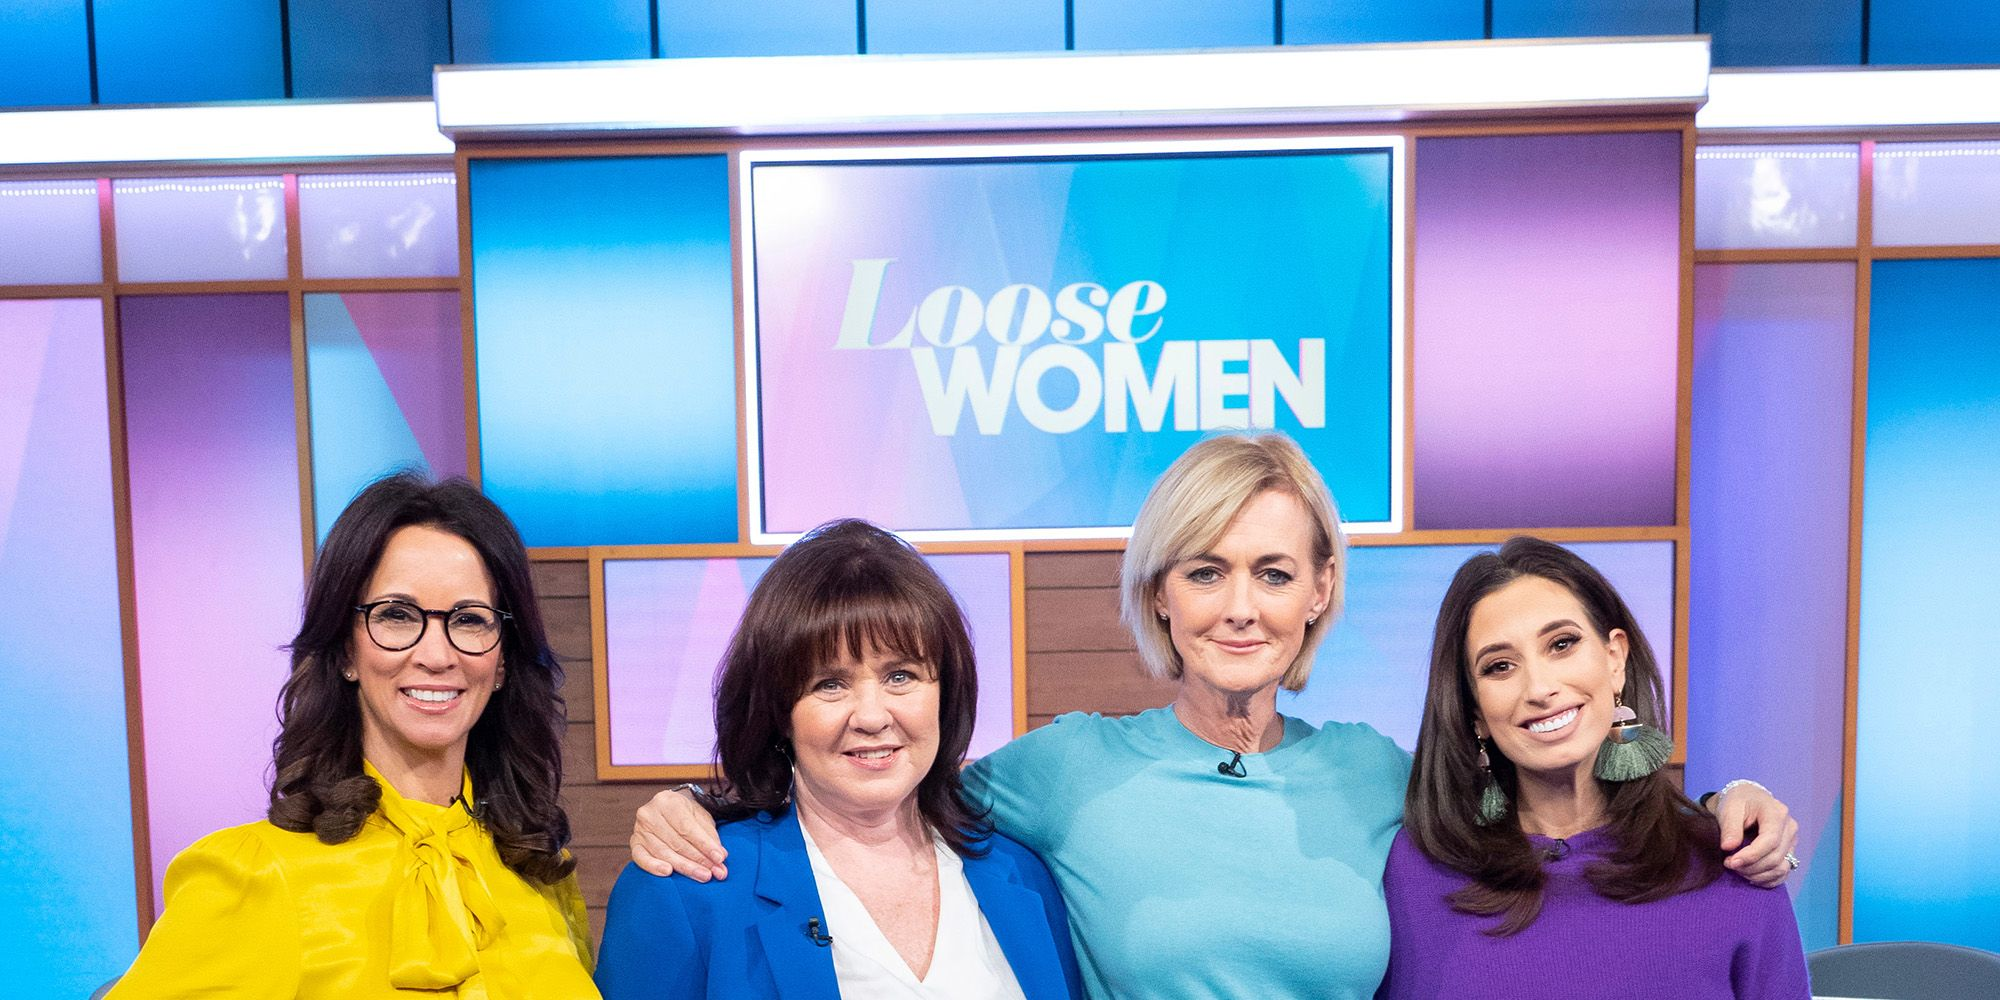 'Loose Women' 10 Year Challenge